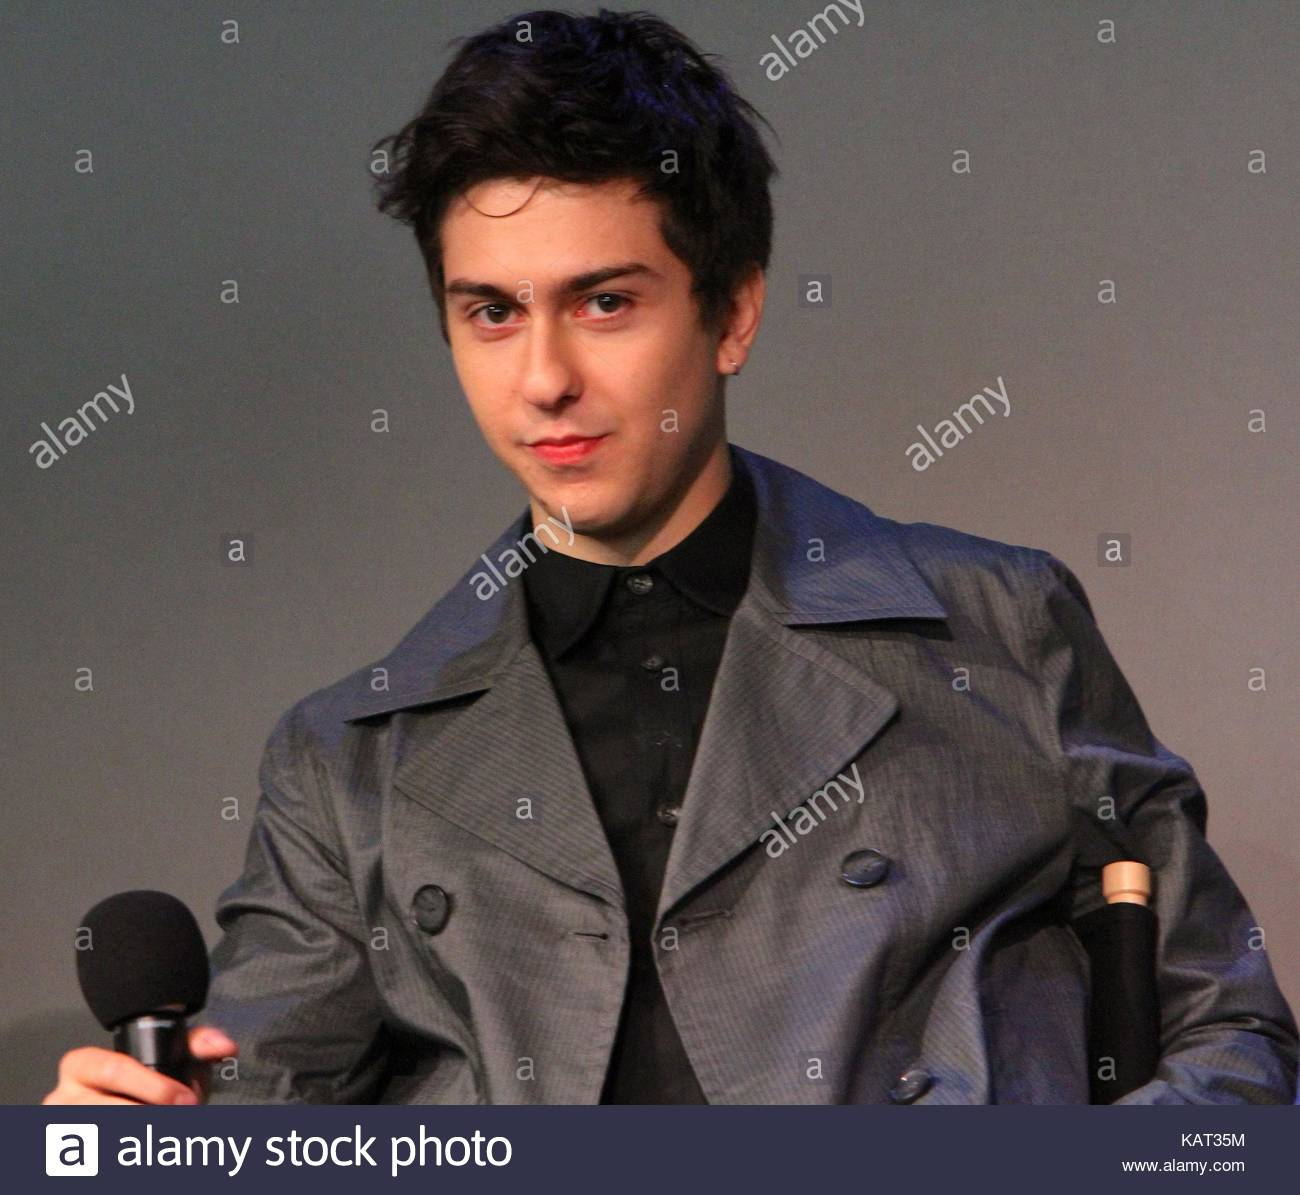 Nat wolff apple store soho presents meet the filmmakers john apple store soho presents meet the filmmakers john green sam trammell and laura dern the fault in our stars event in nyc m4hsunfo